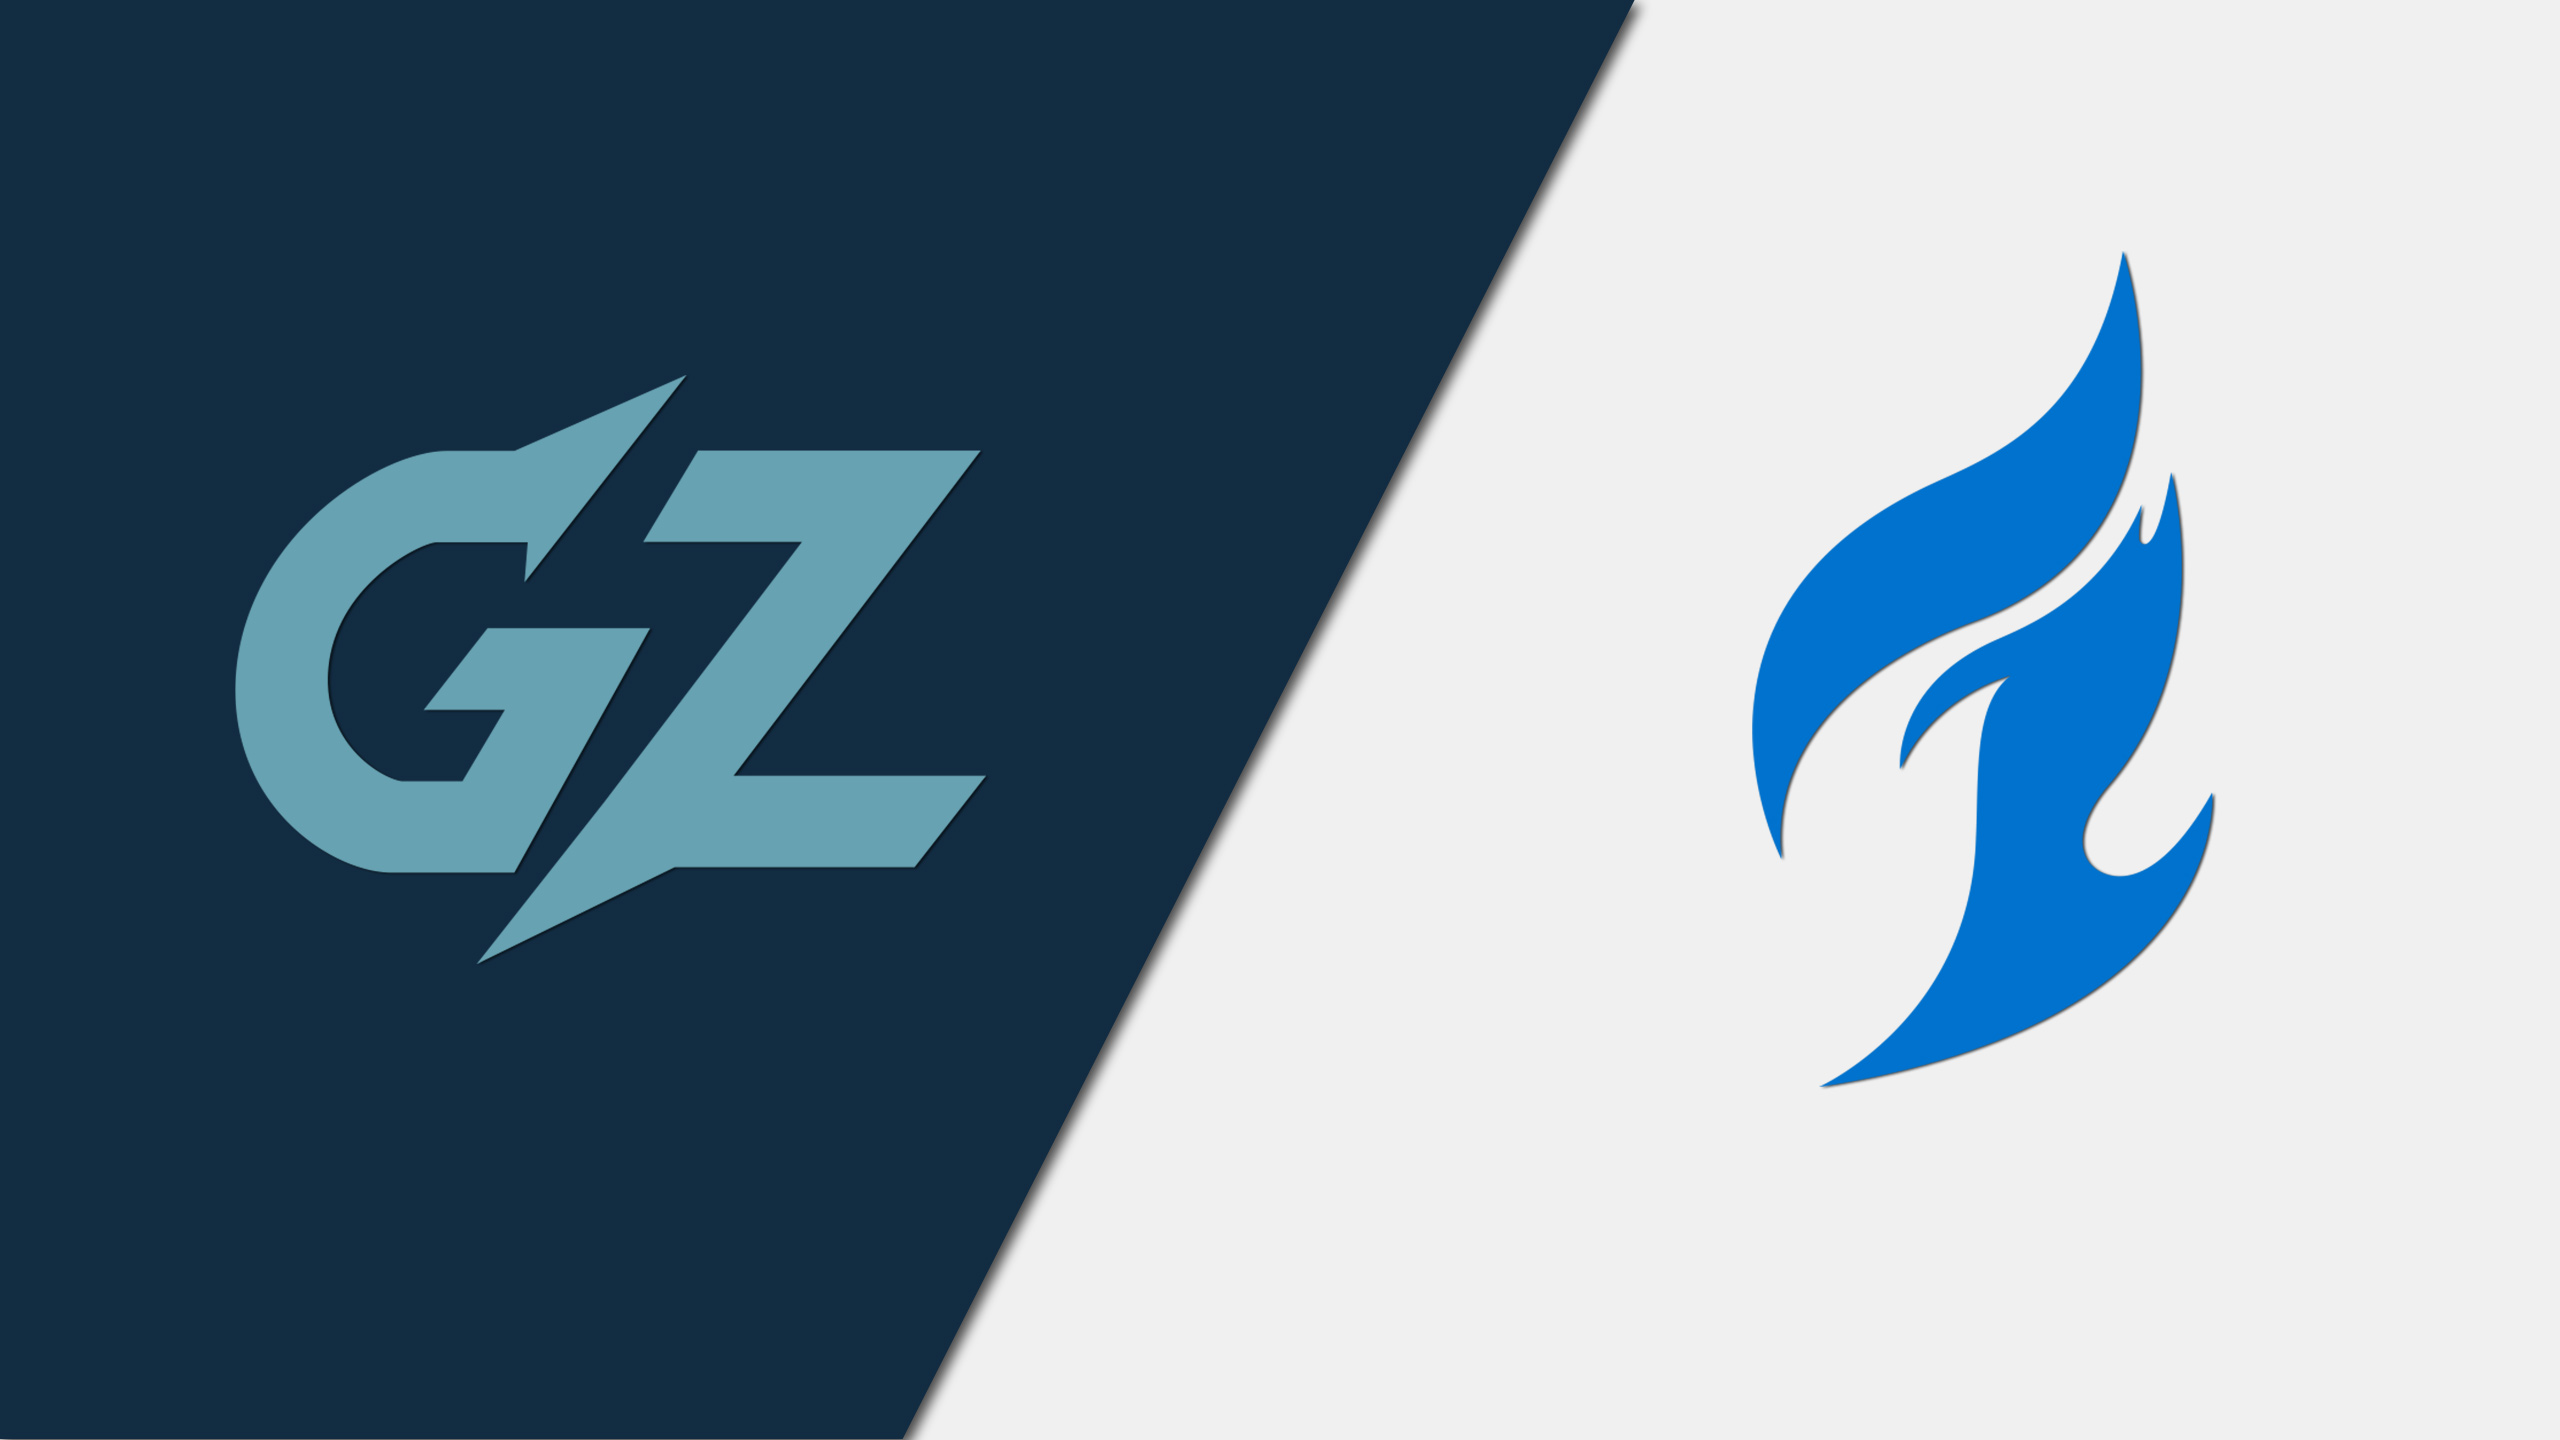 Guangzhou Charge vs. Dallas Fuel